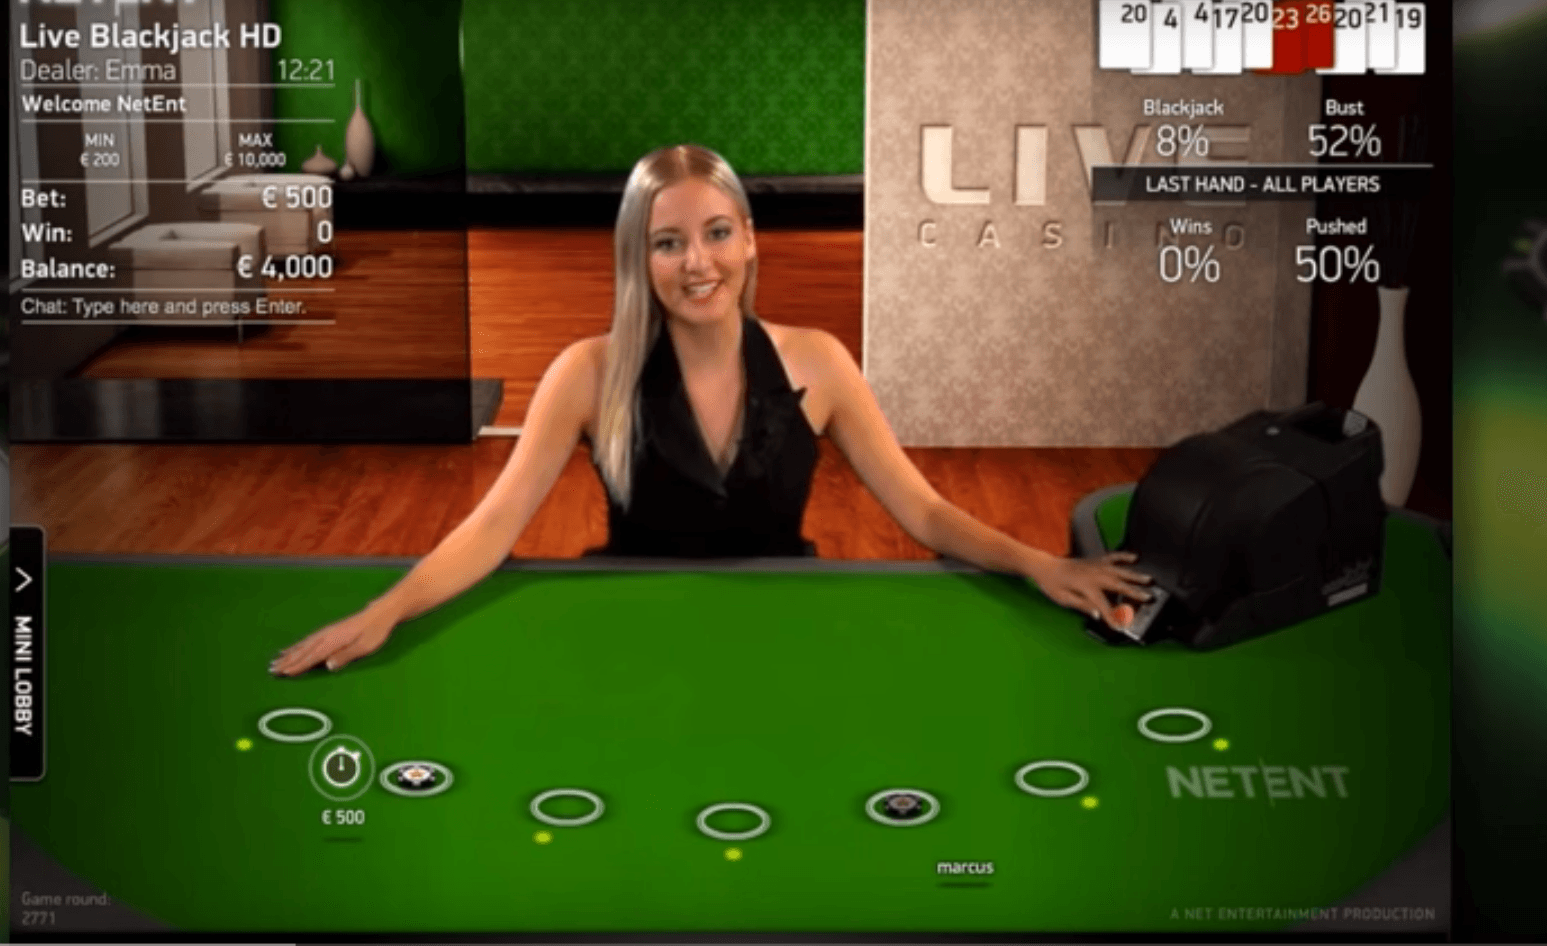 safest online casino sizlling hot